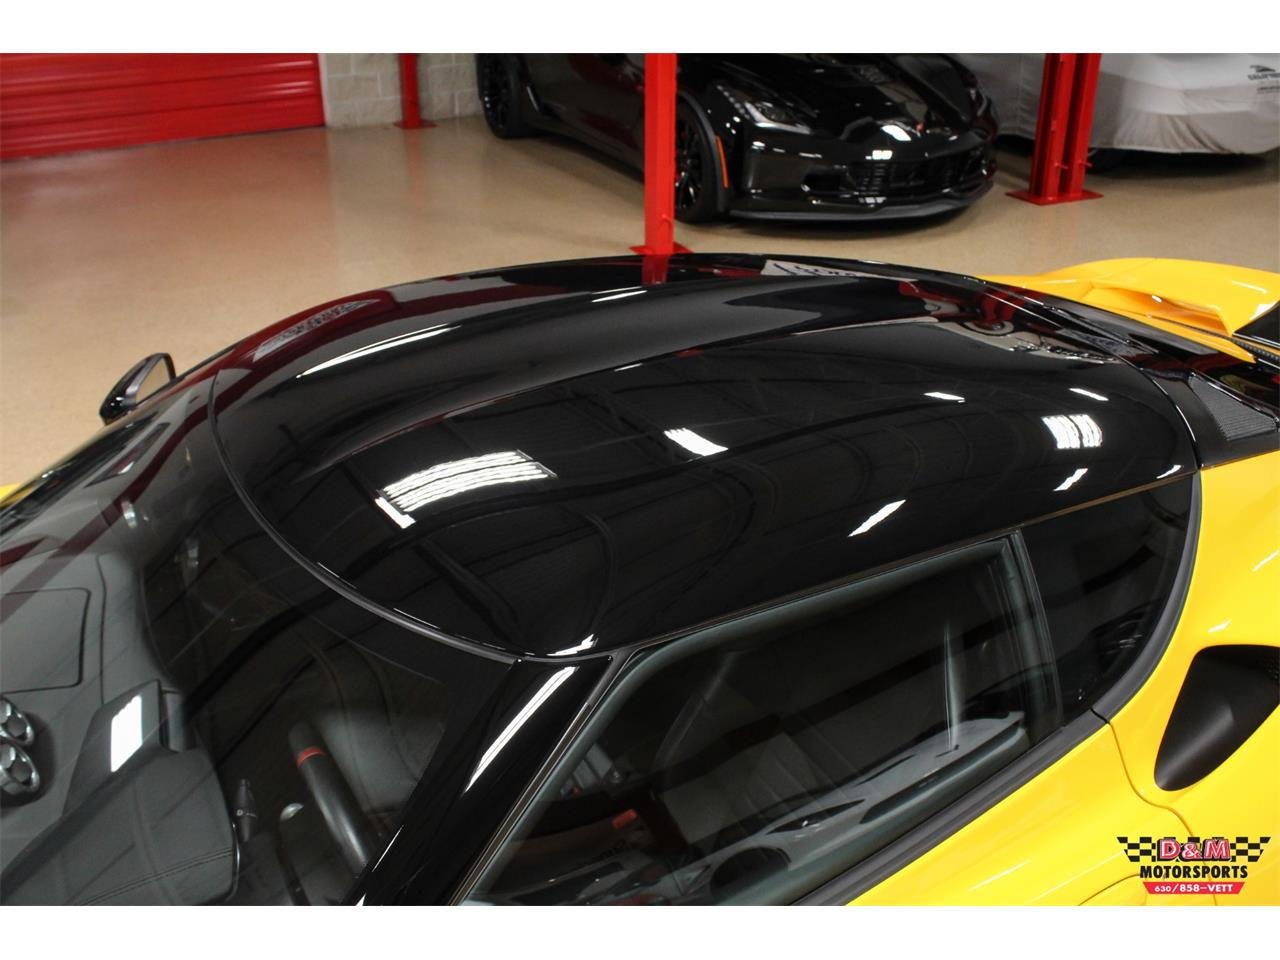 Large Picture of 2017 Lotus Evora located in Illinois - $76,995.00 Offered by D & M Motorsports - OY1K